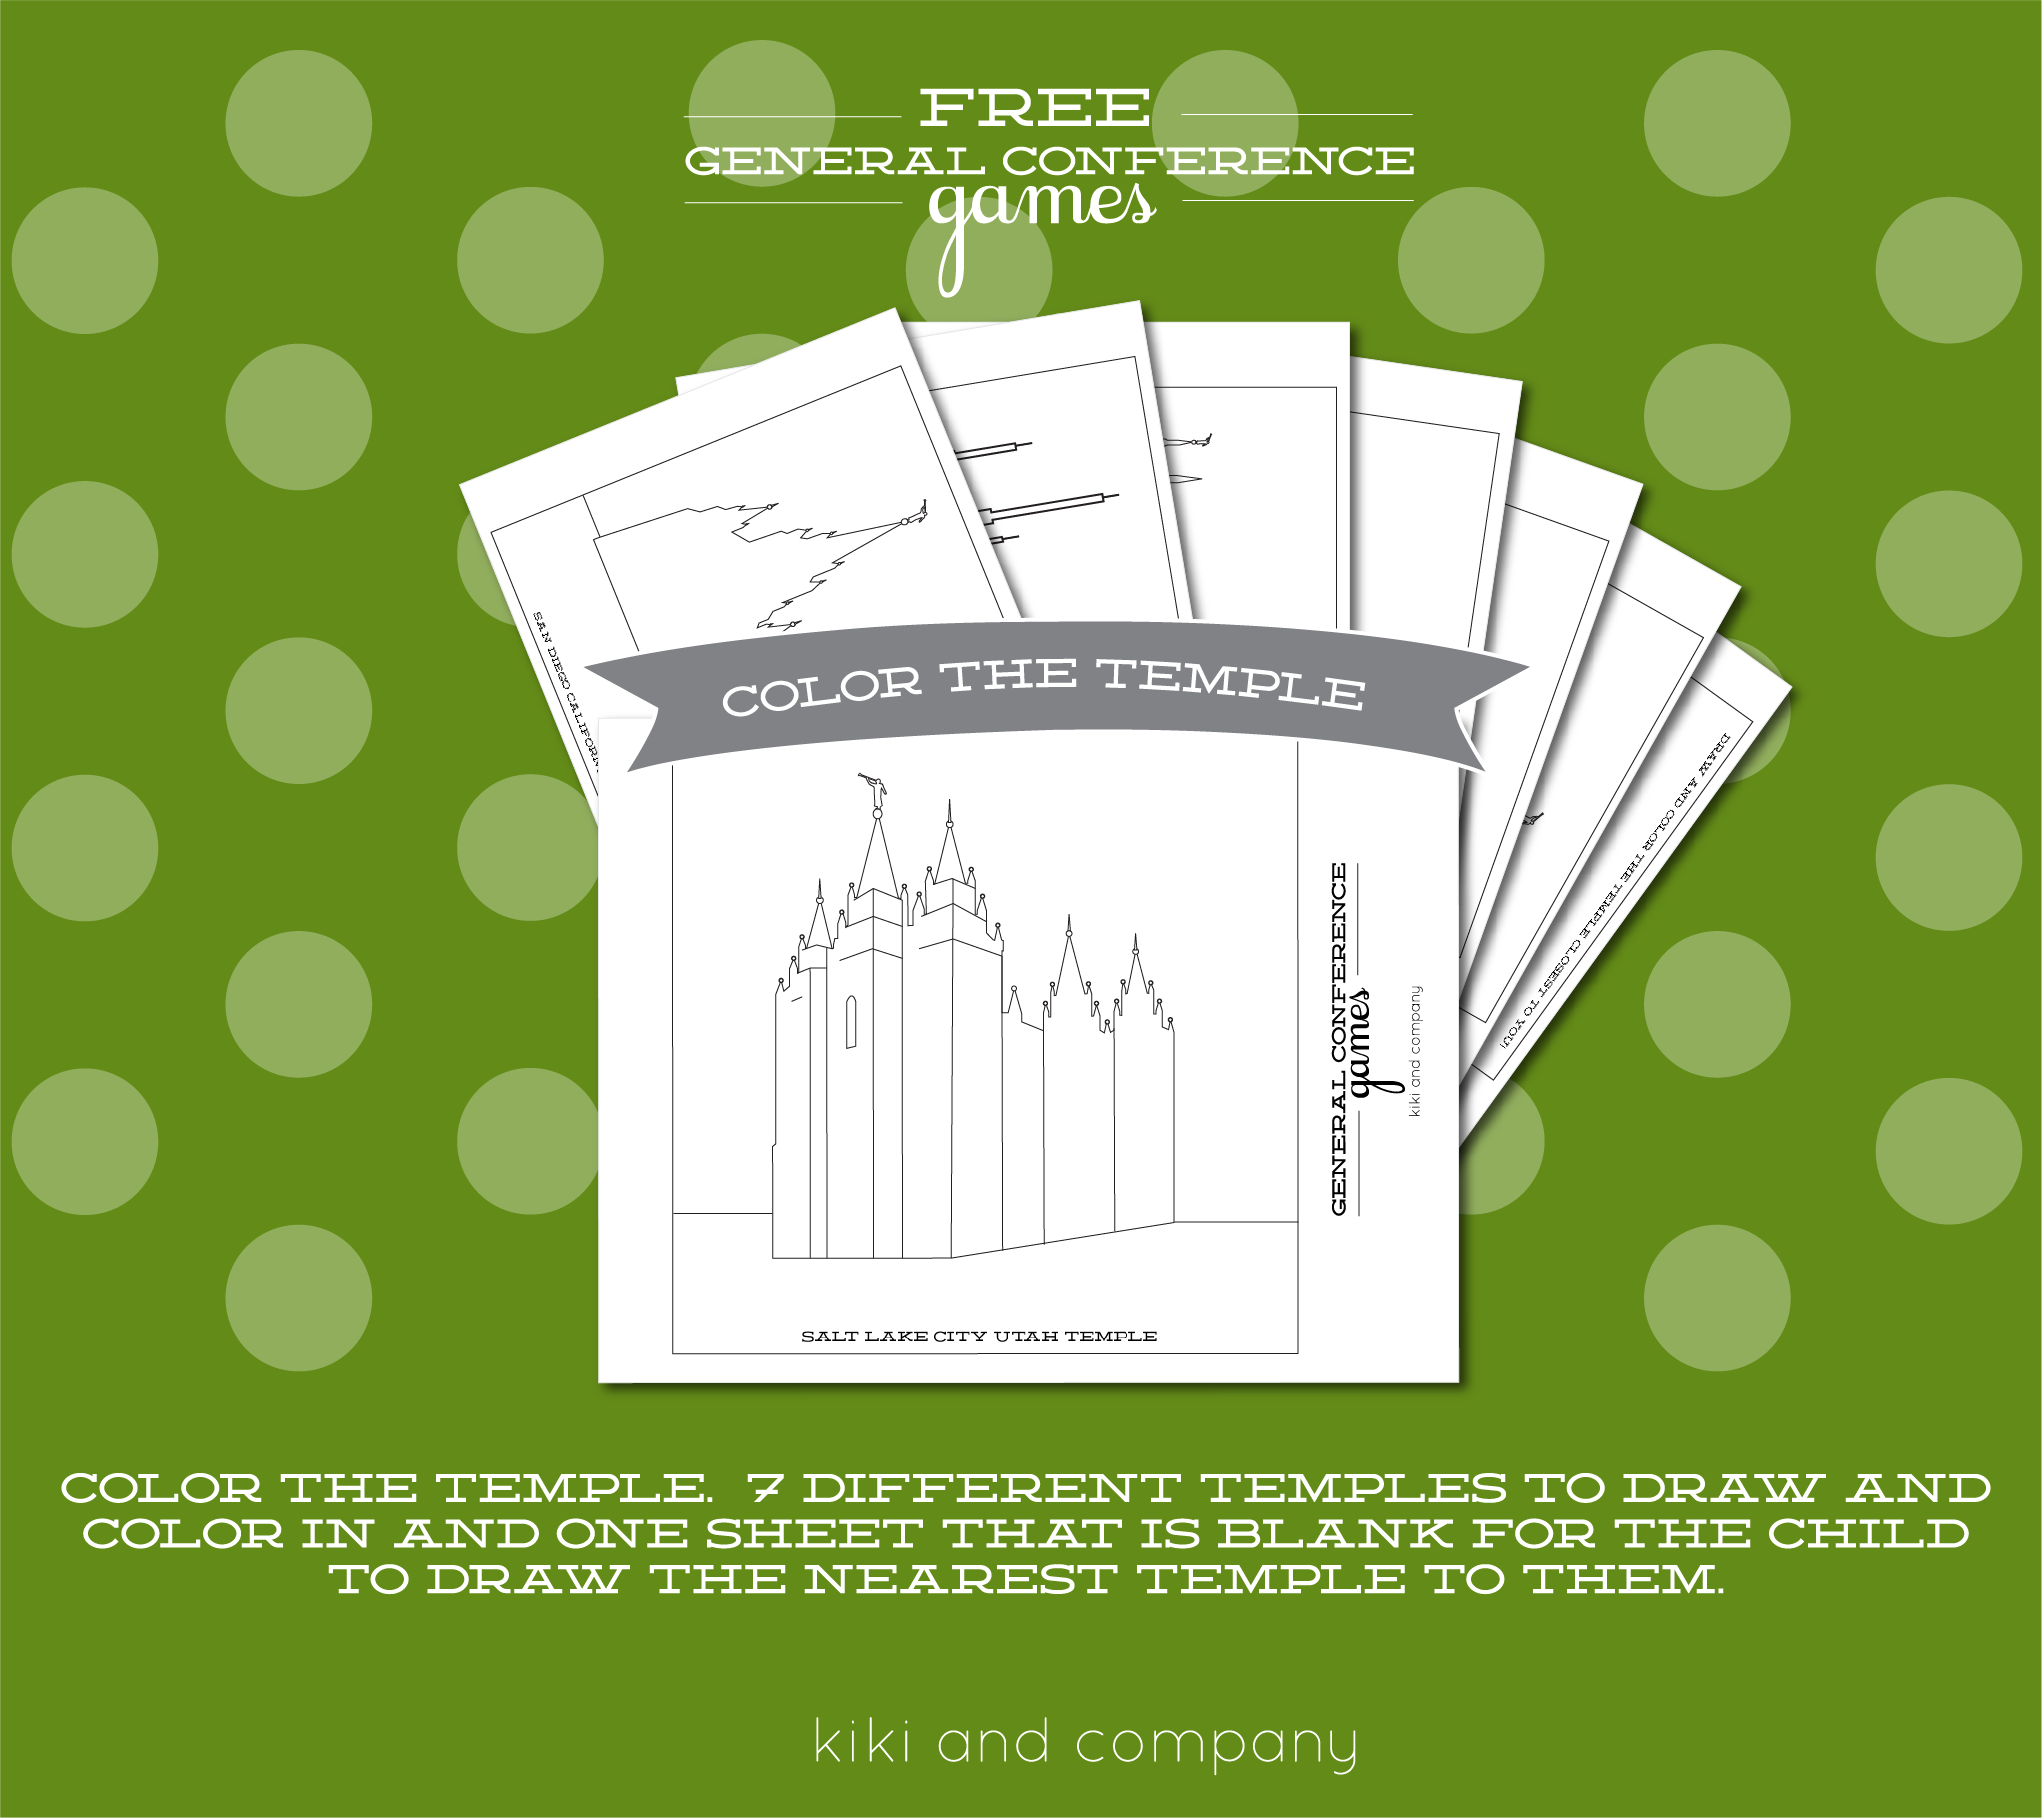 free general conference printable games. color the temple.   General ...